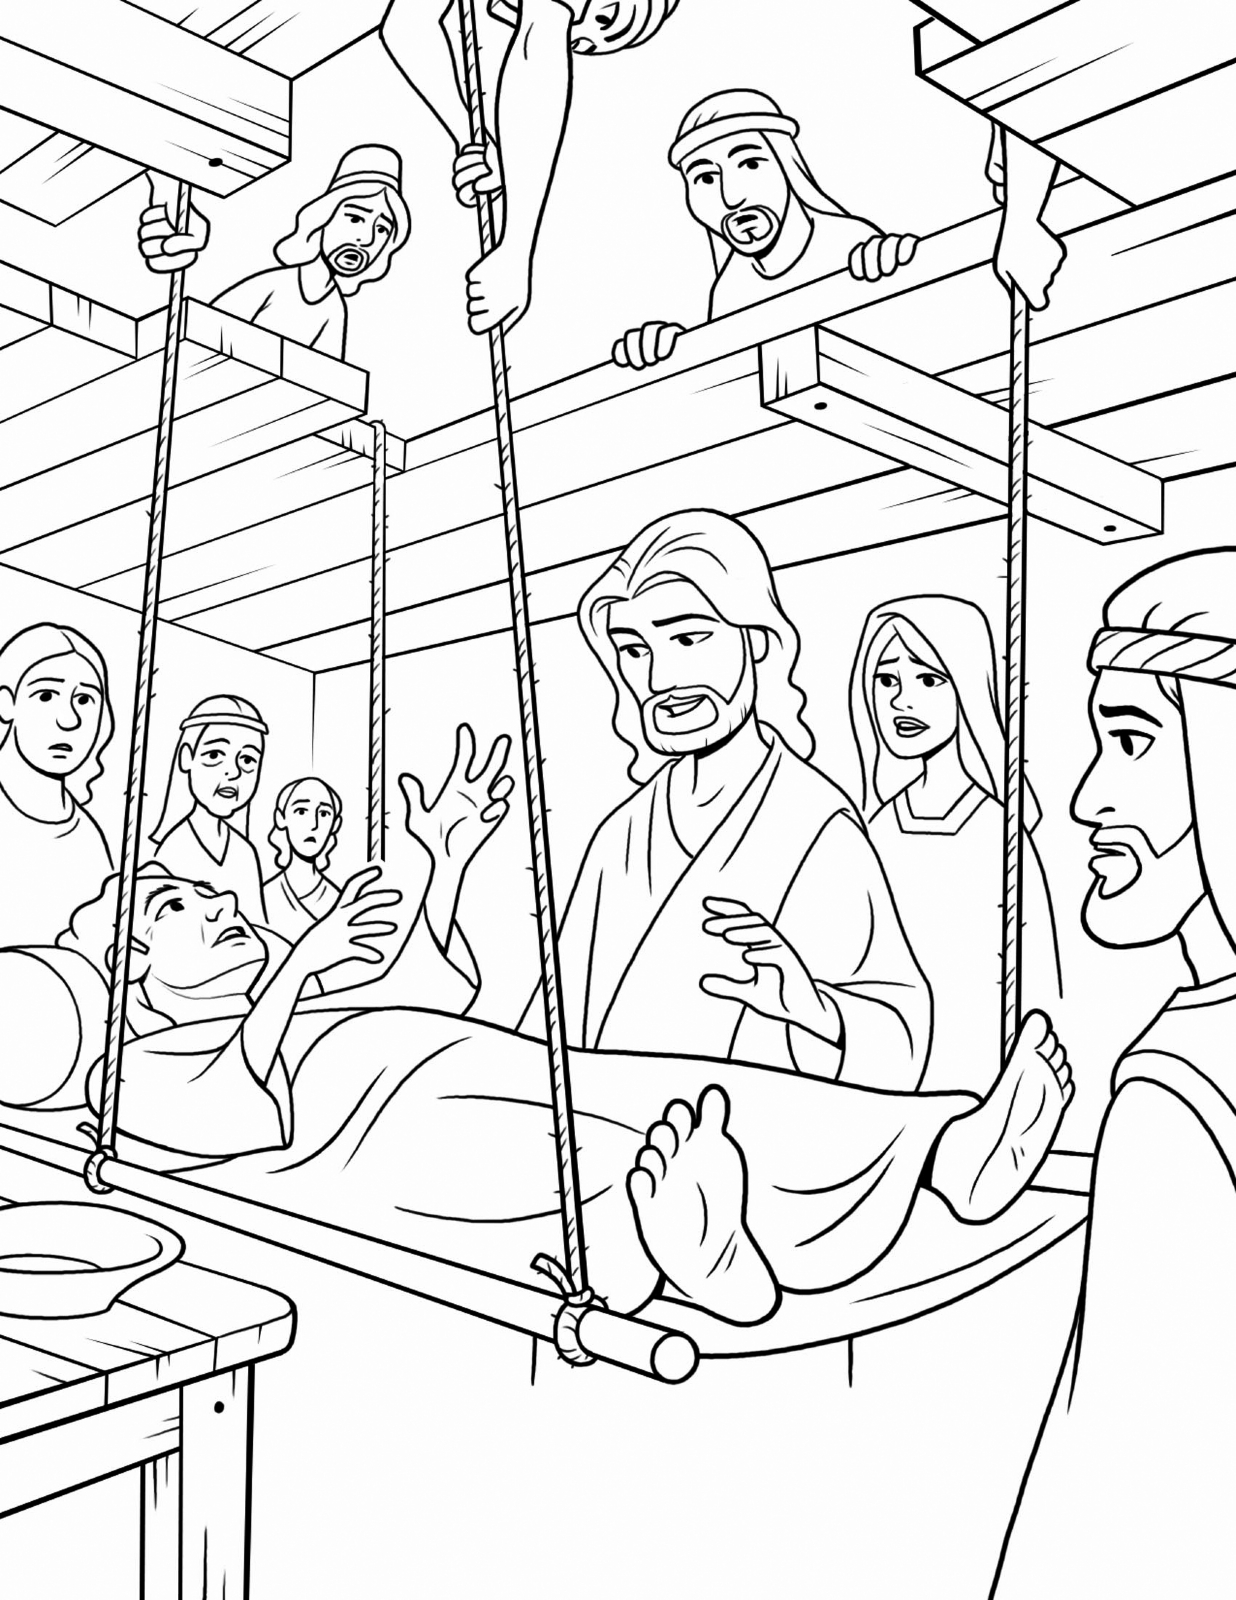 through the bible coloring pages thru the bible coloring pages printable free coloring sheets pages bible the through coloring